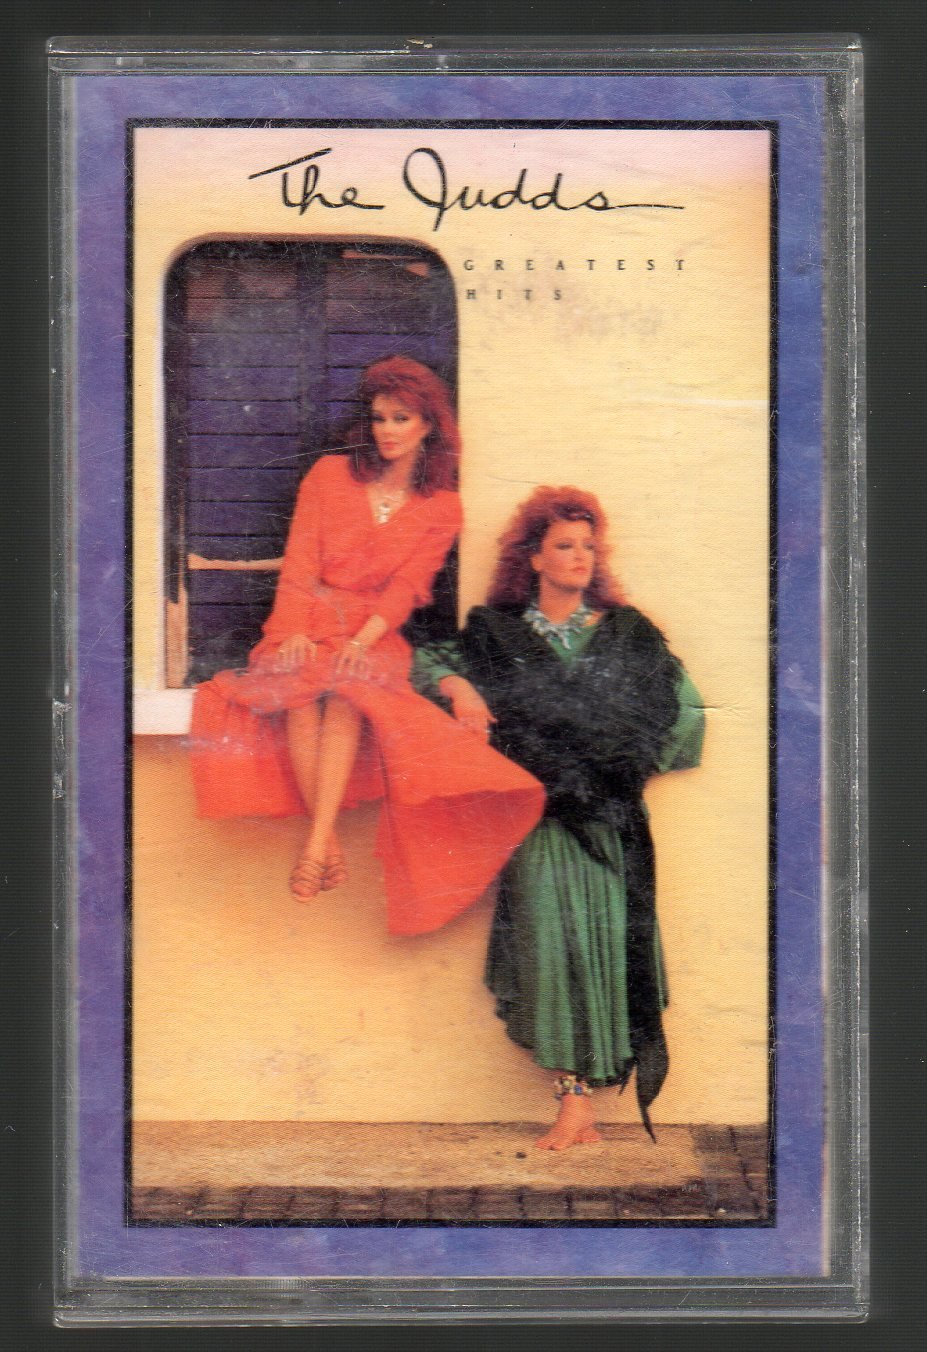 The Judds - Greatest Hits Cassette Tape